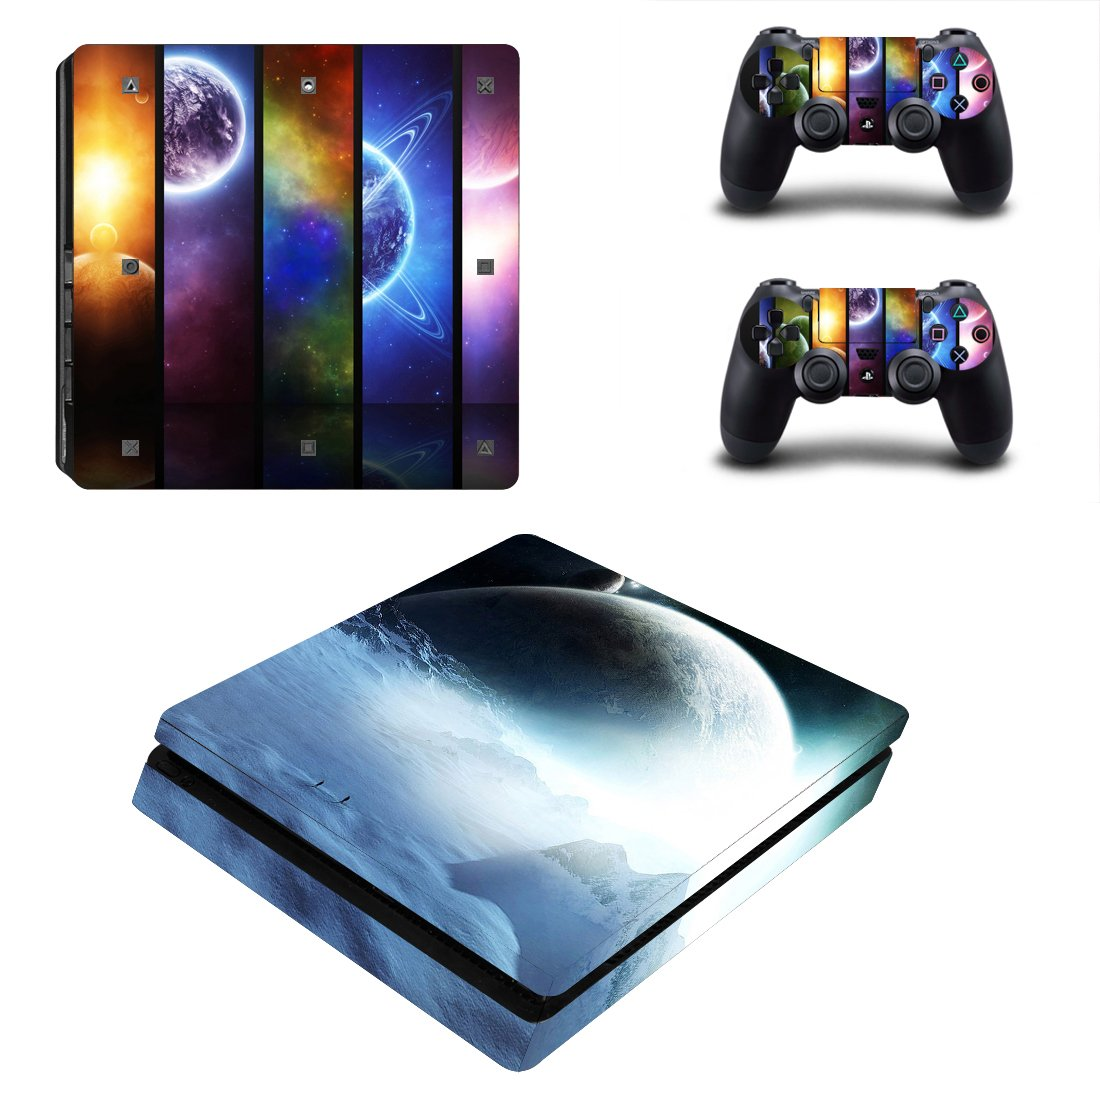 Video Game Accessories Just Ps4 Slim Sticker Console Decal Playstation 4 Controller Vinyl Skin Earth A Wide Selection Of Colours And Designs